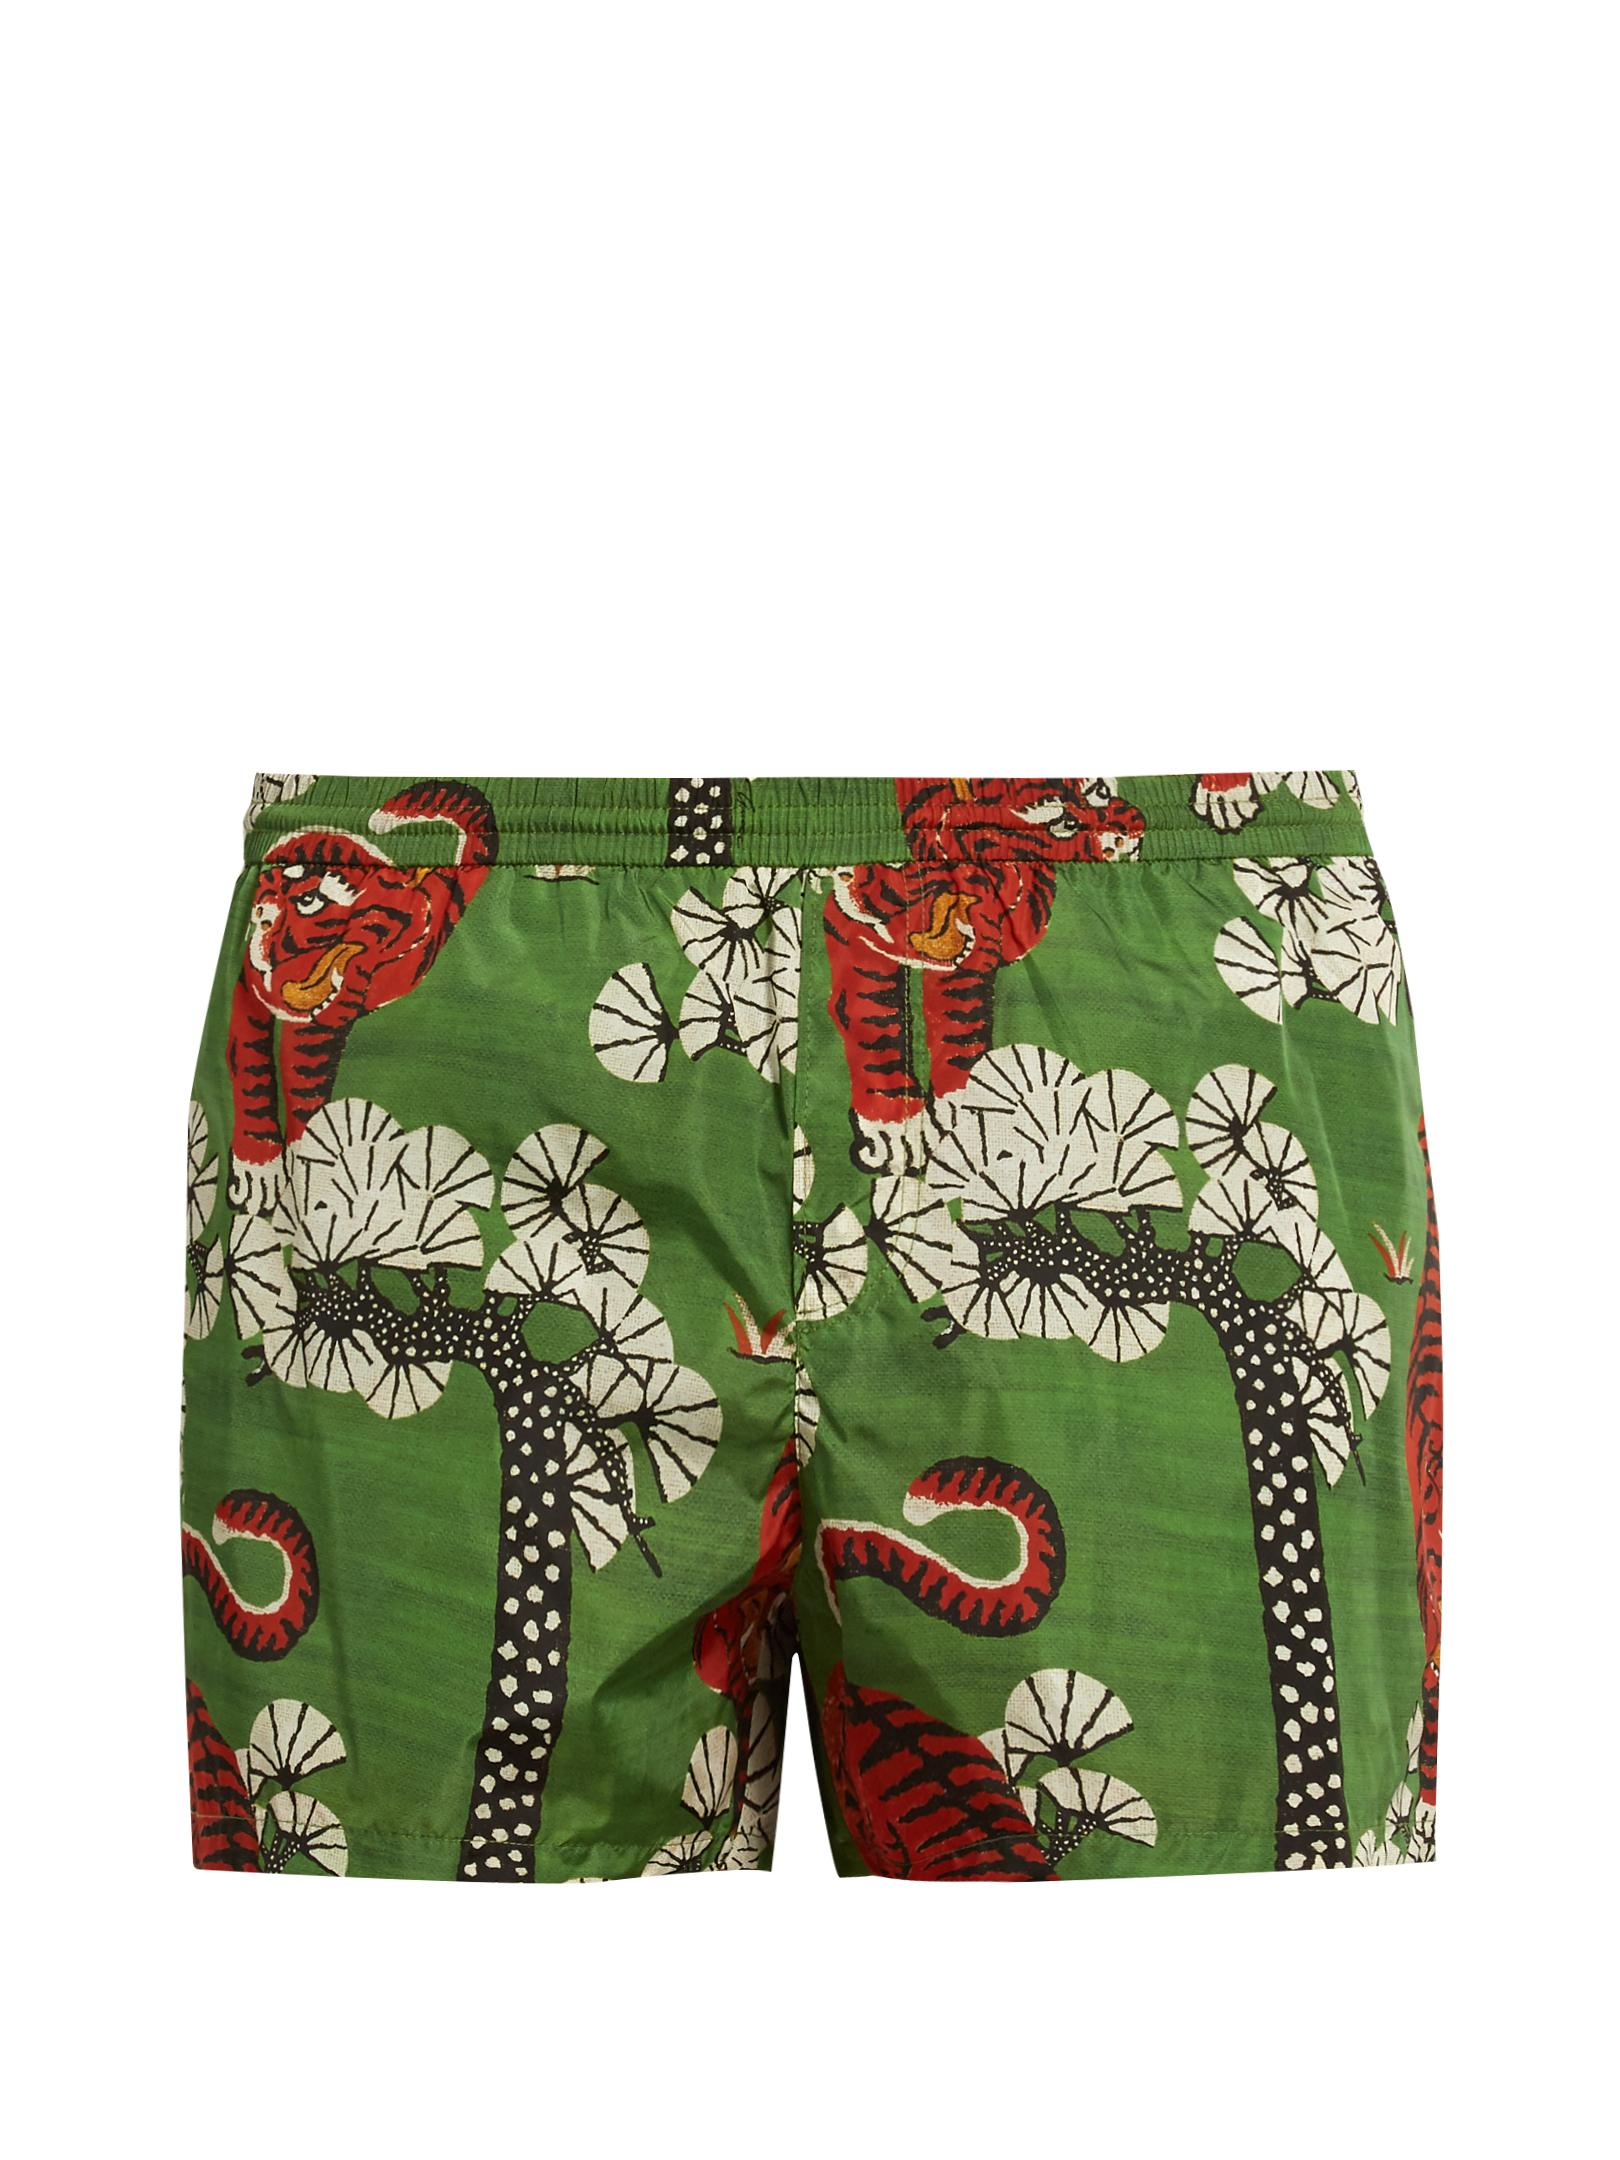 1be55766cc366 Gucci Tiger-print Nylon Swim Shorts in Green for Men - Lyst